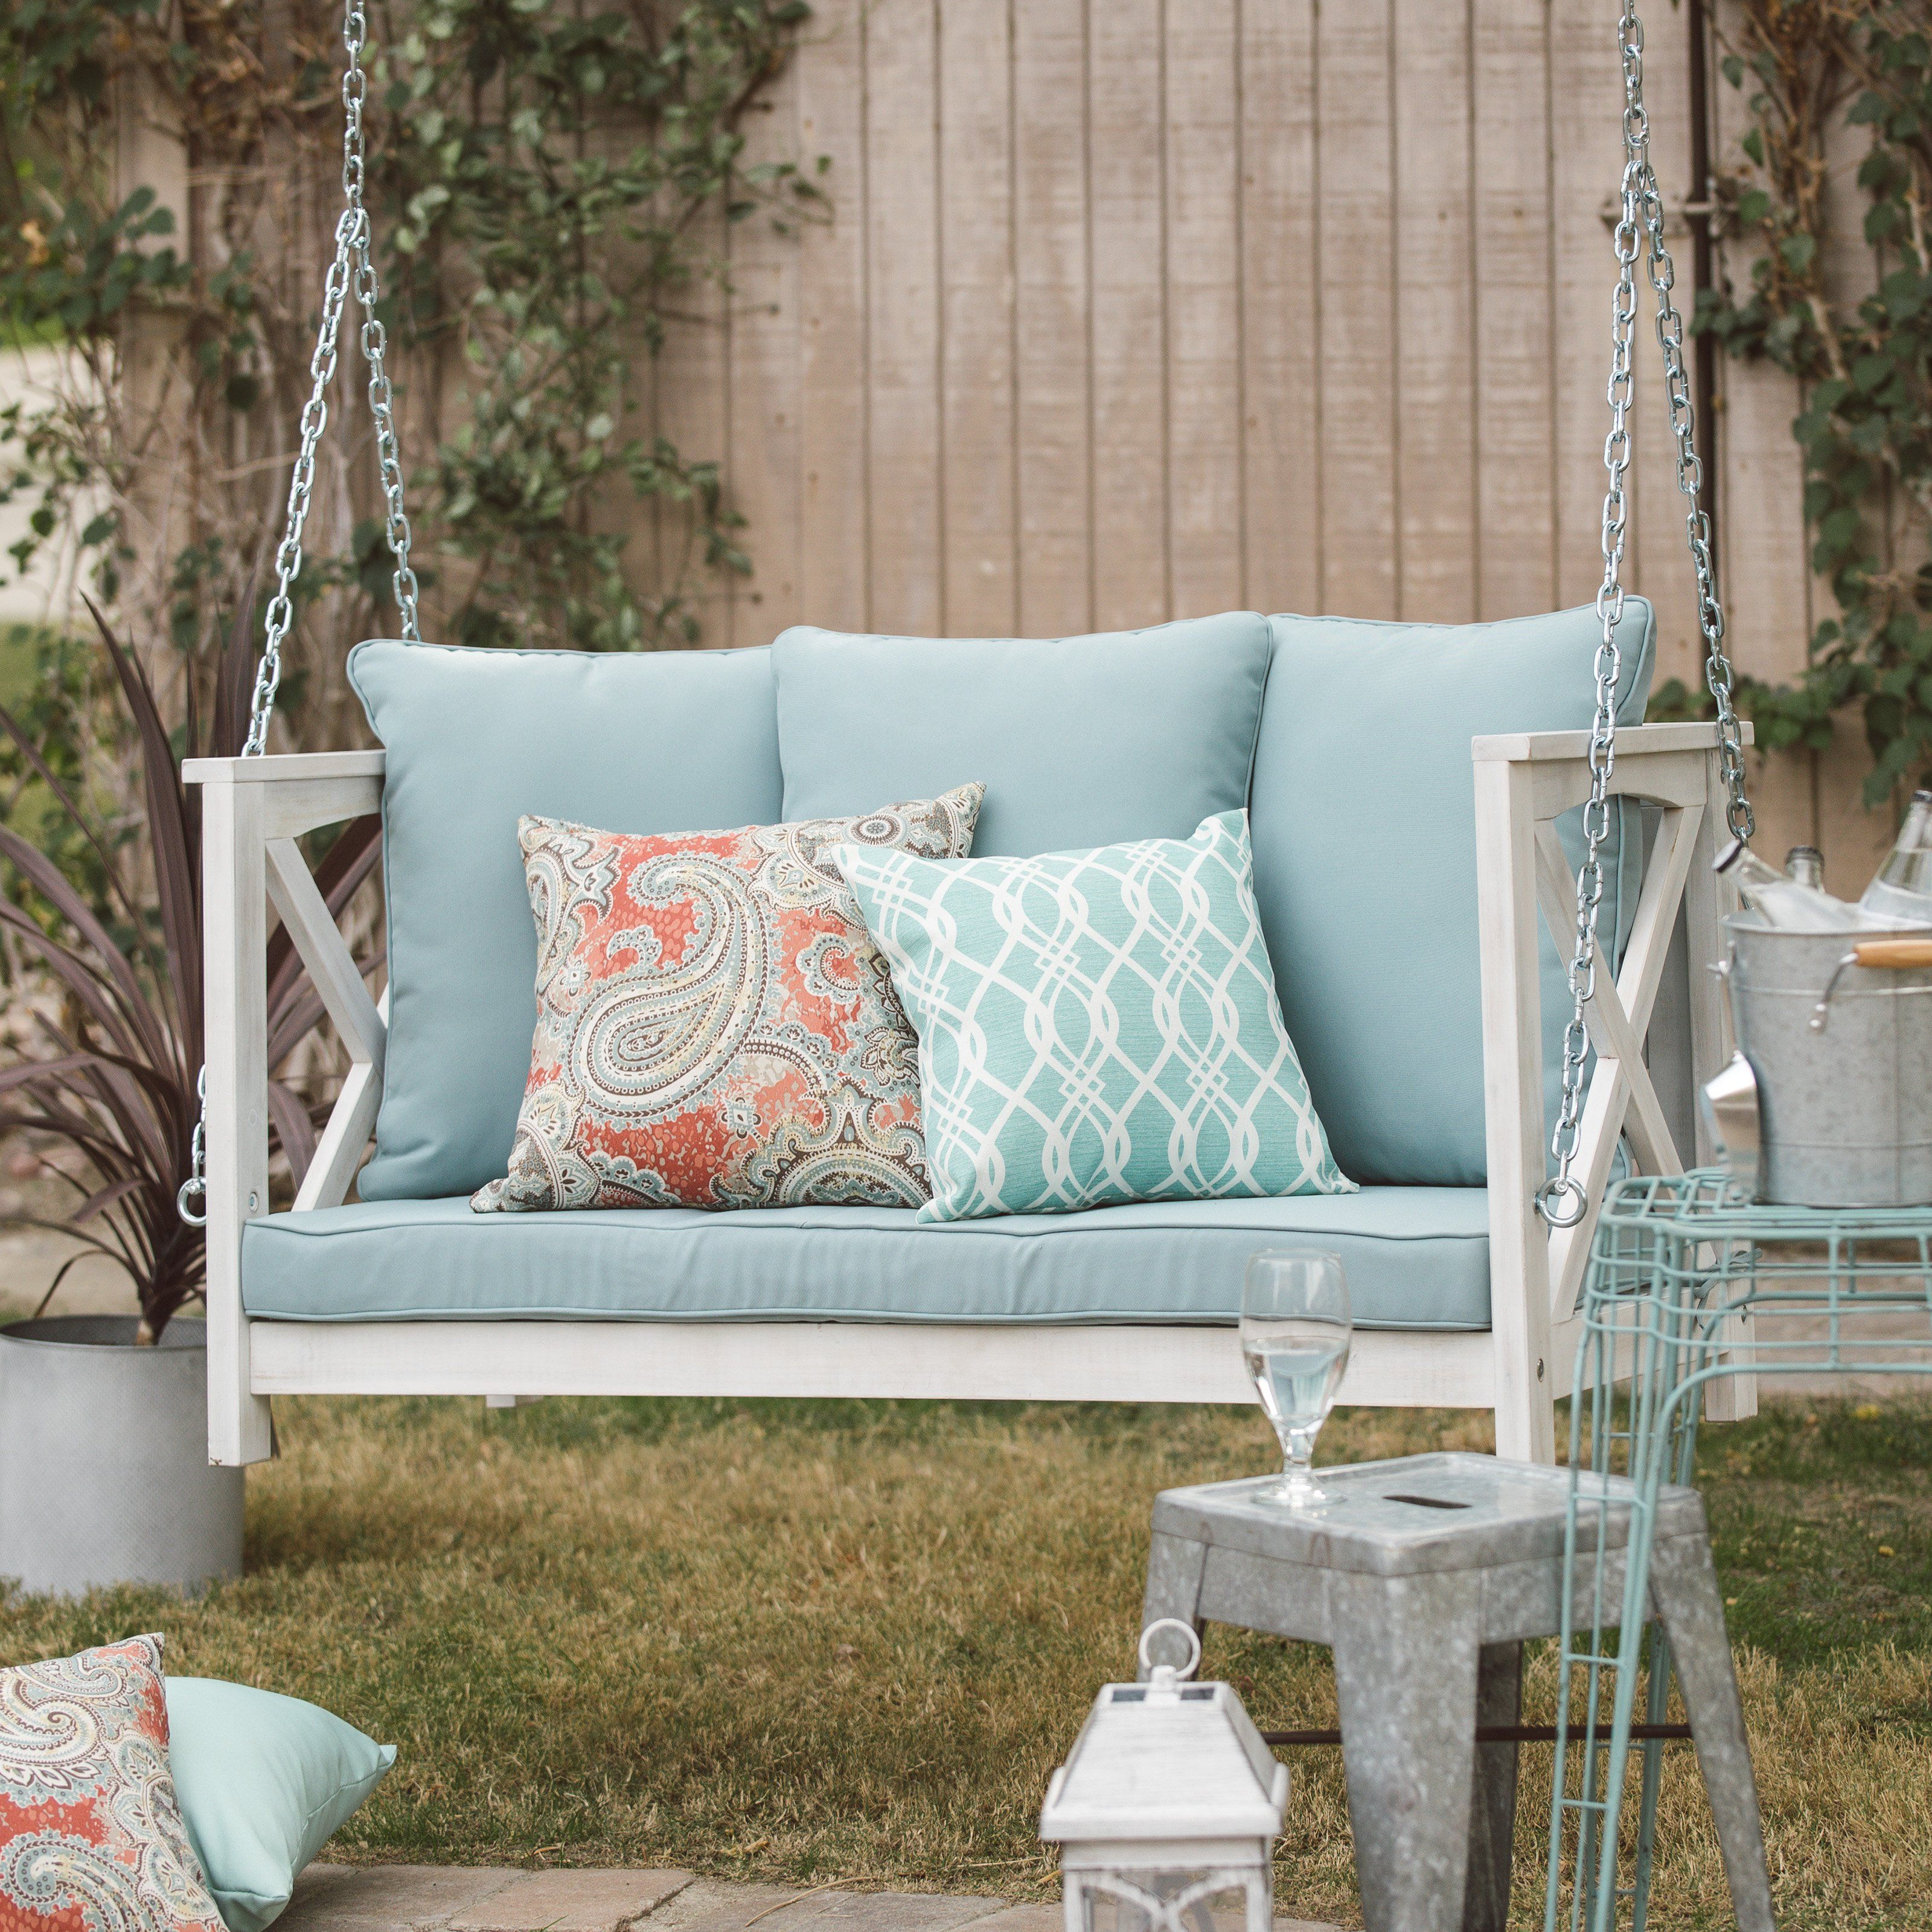 Coral coast delanie rose ft porch swing with cushion from